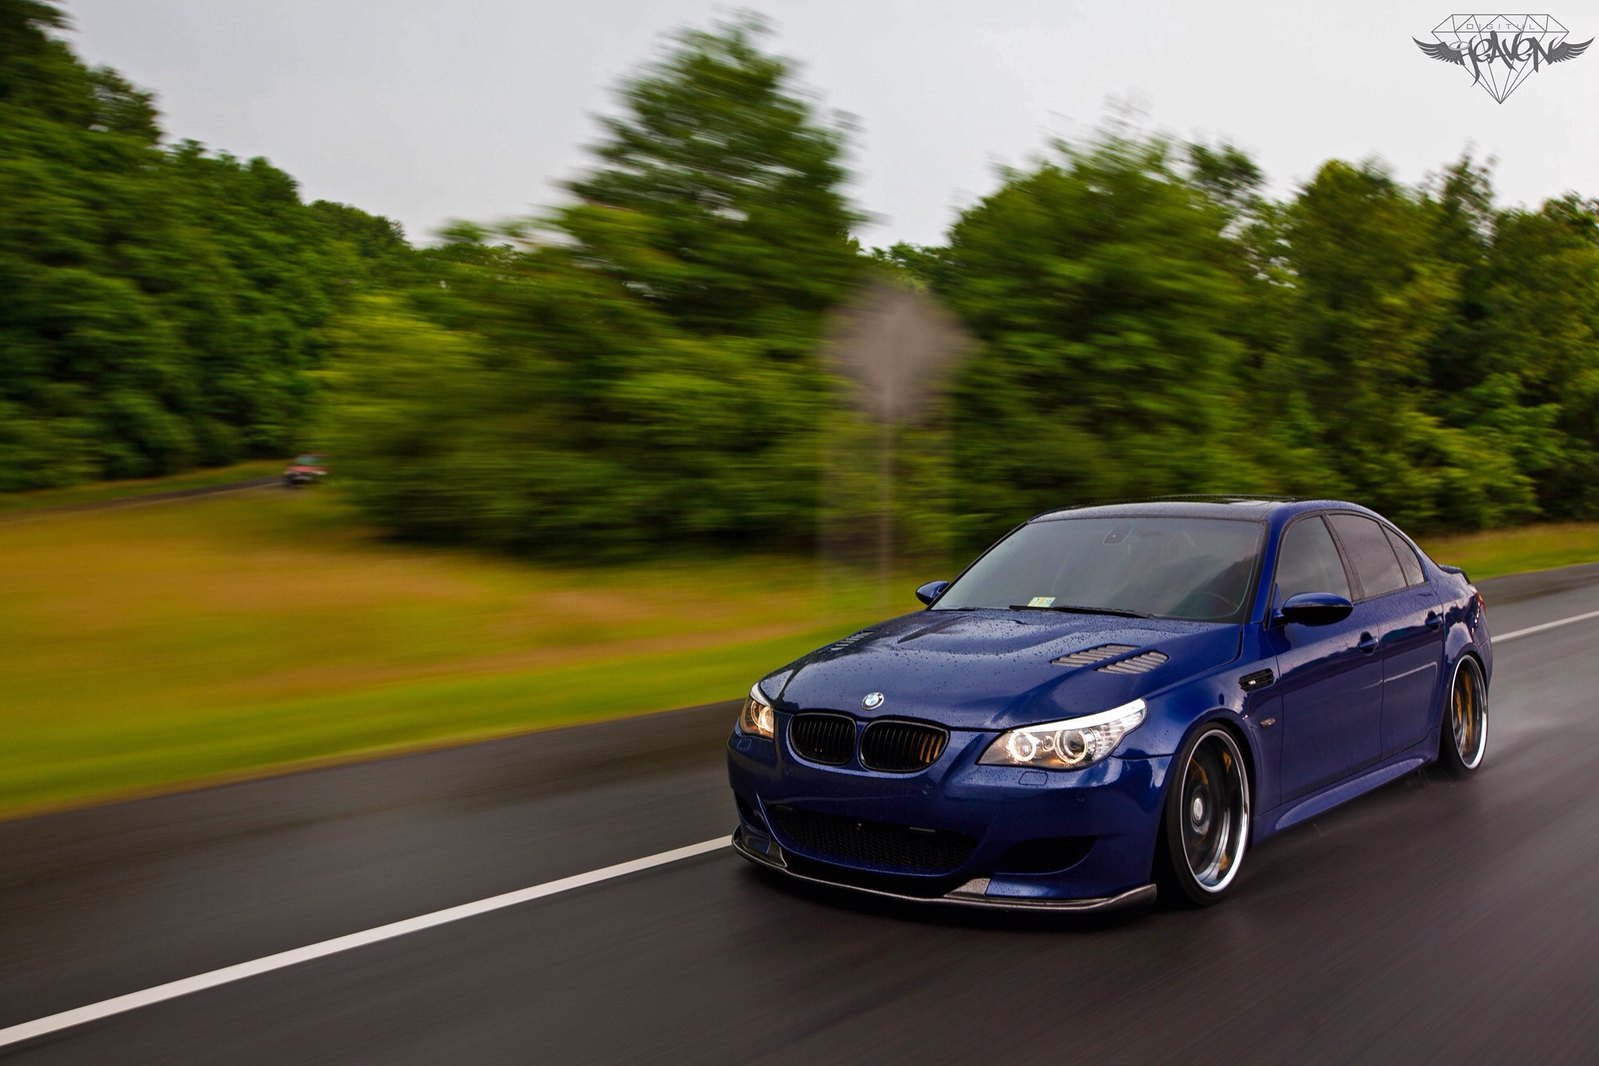 Rolling Shots In The Rain Finally Completed Modding My